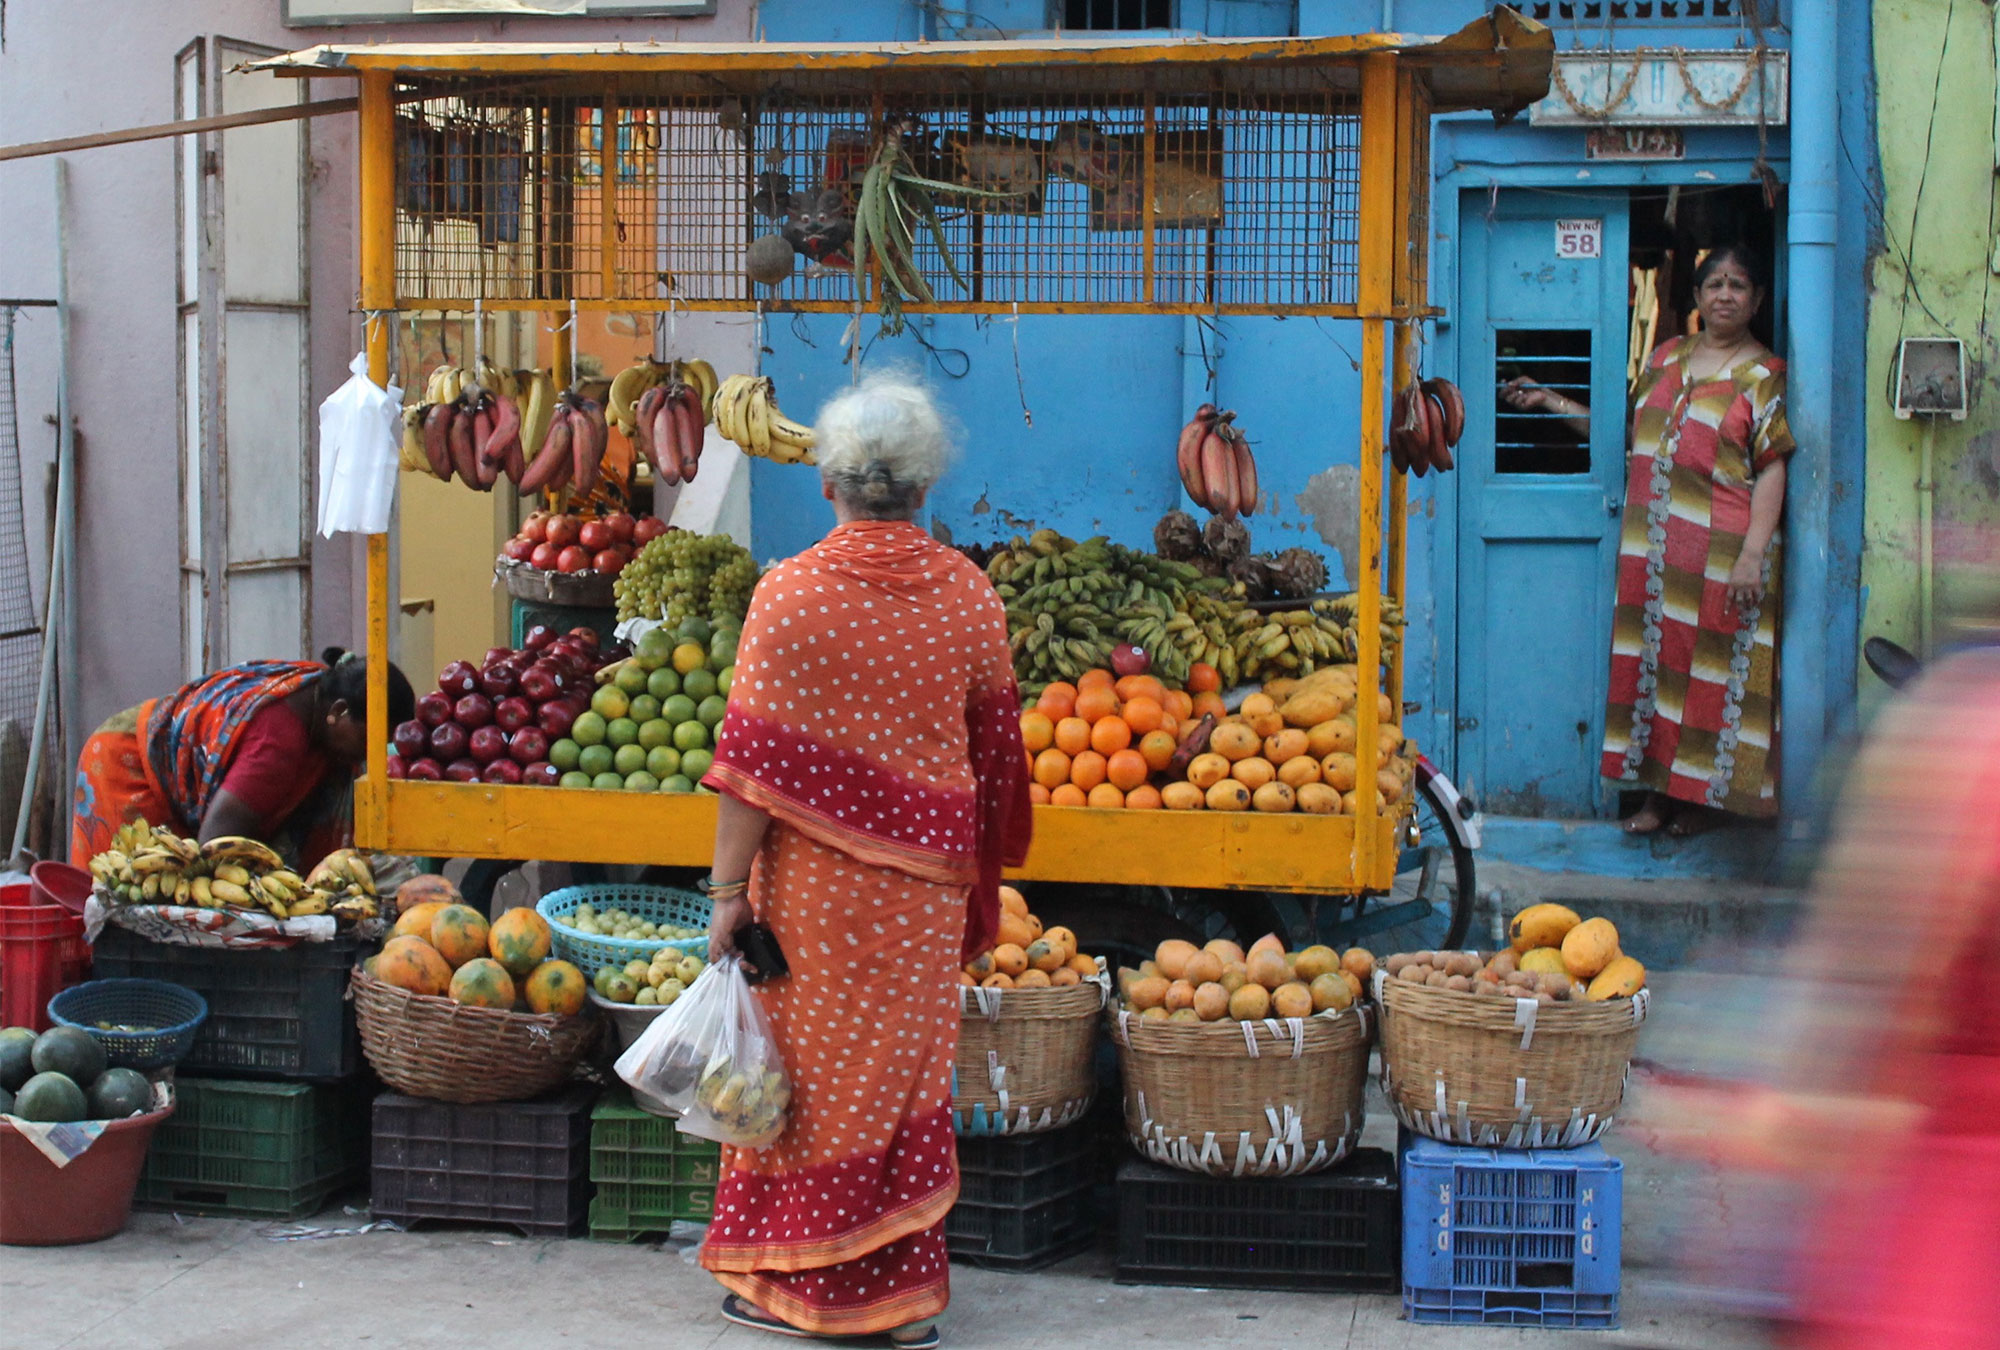 Woman in sari in front of a roadside fruit stand